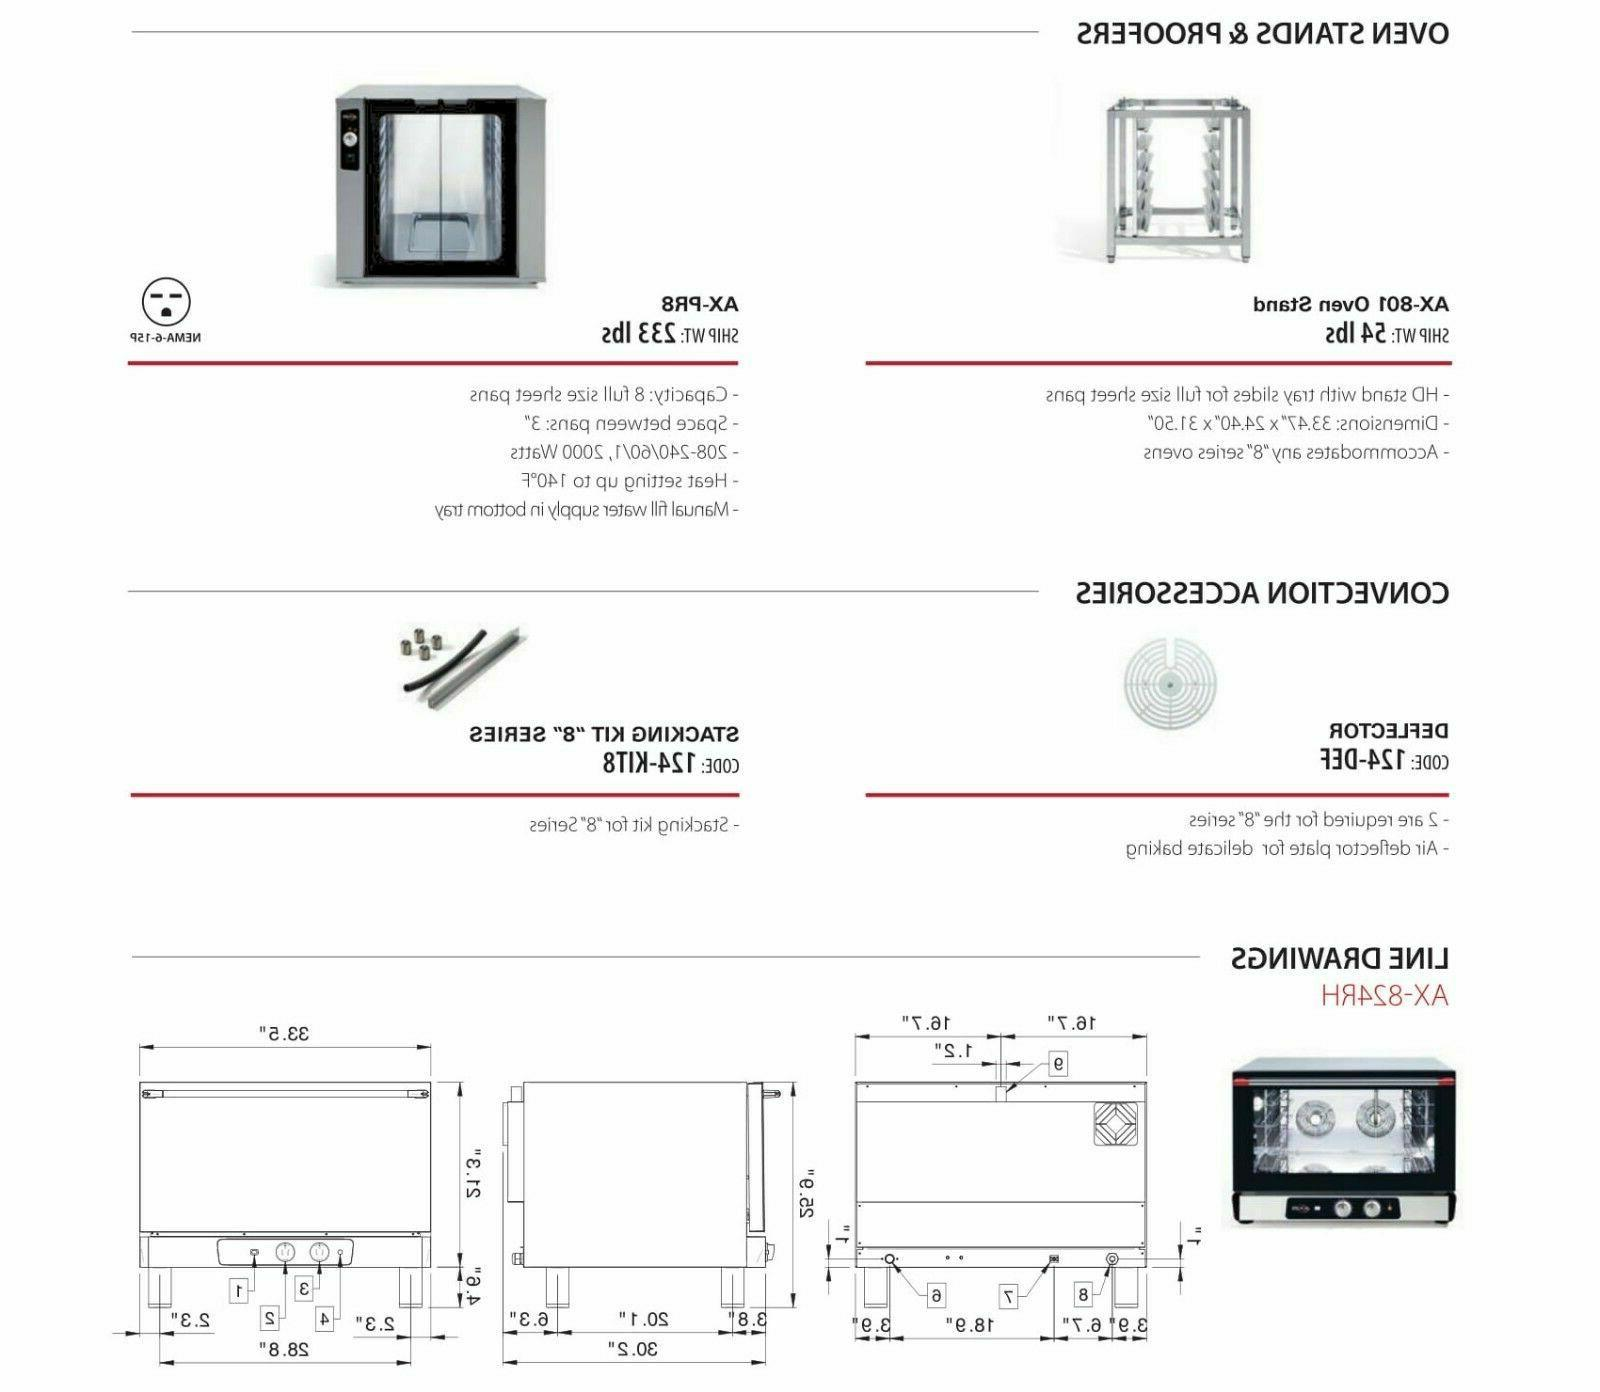 Axis Oven Humidity